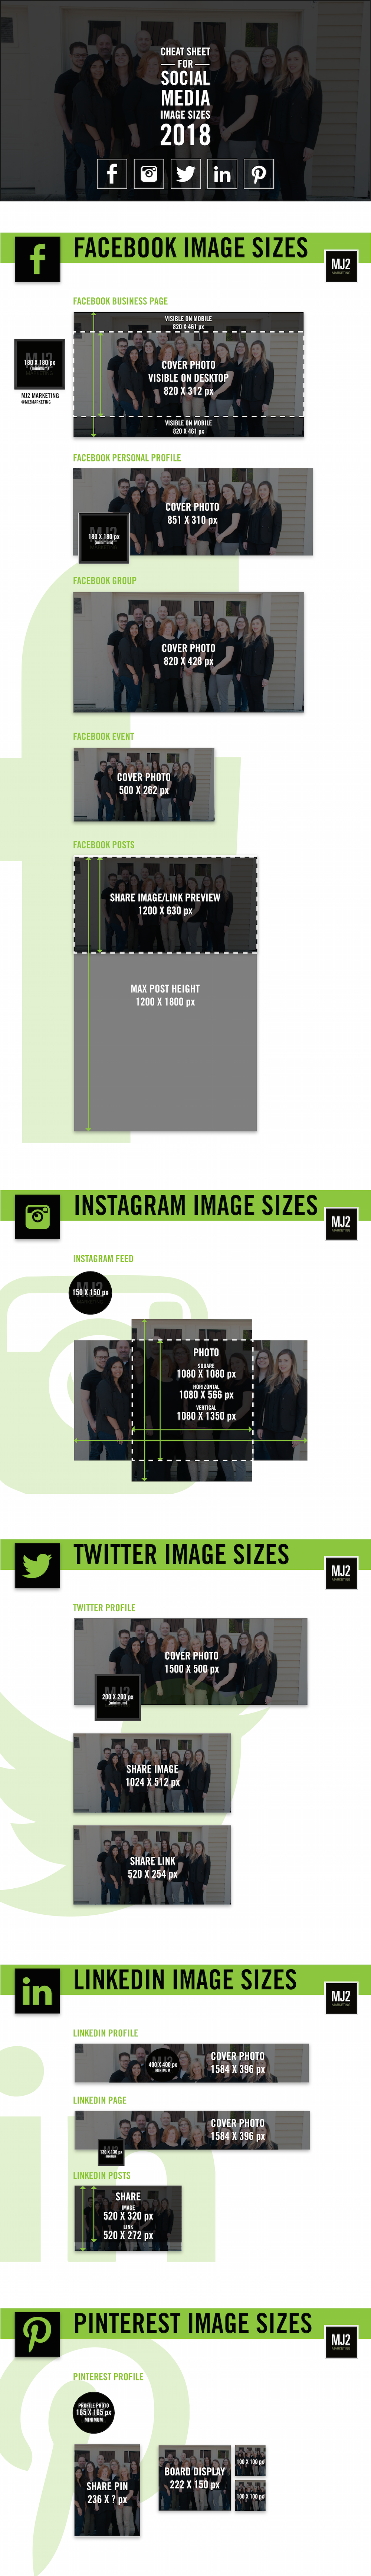 Social Media Image Size Infographic